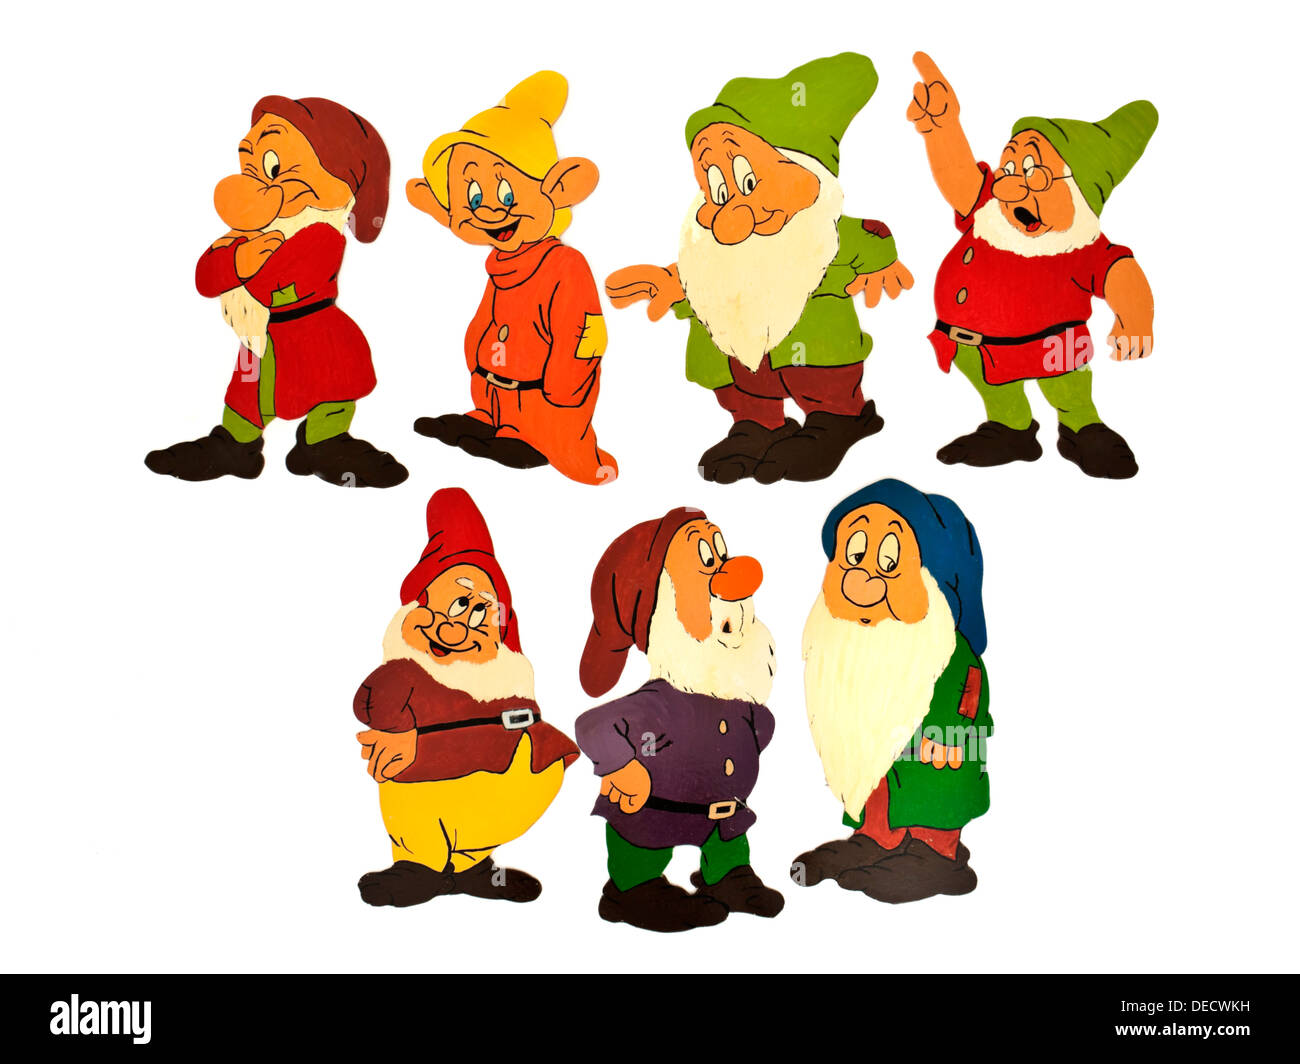 'The Seven Dwarfs' wooden home-made nursery wall decorations - Stock Image